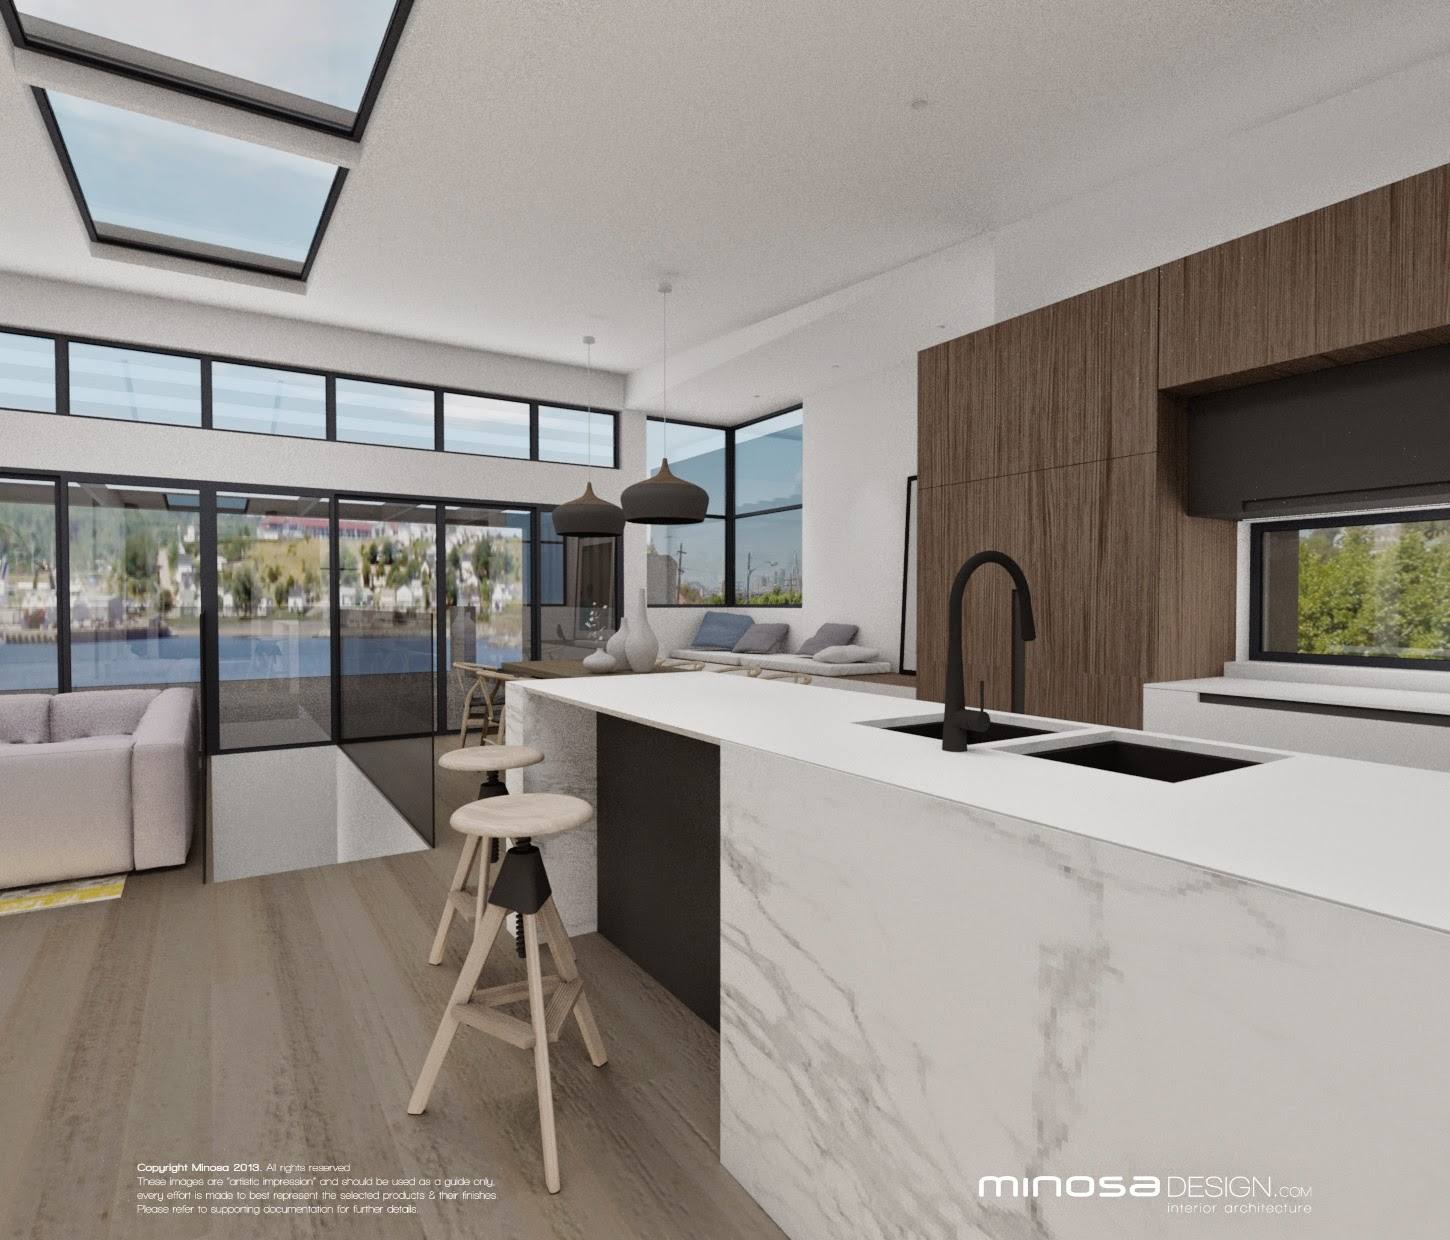 Minosa: The Modernliving room - Centred around the kitchen